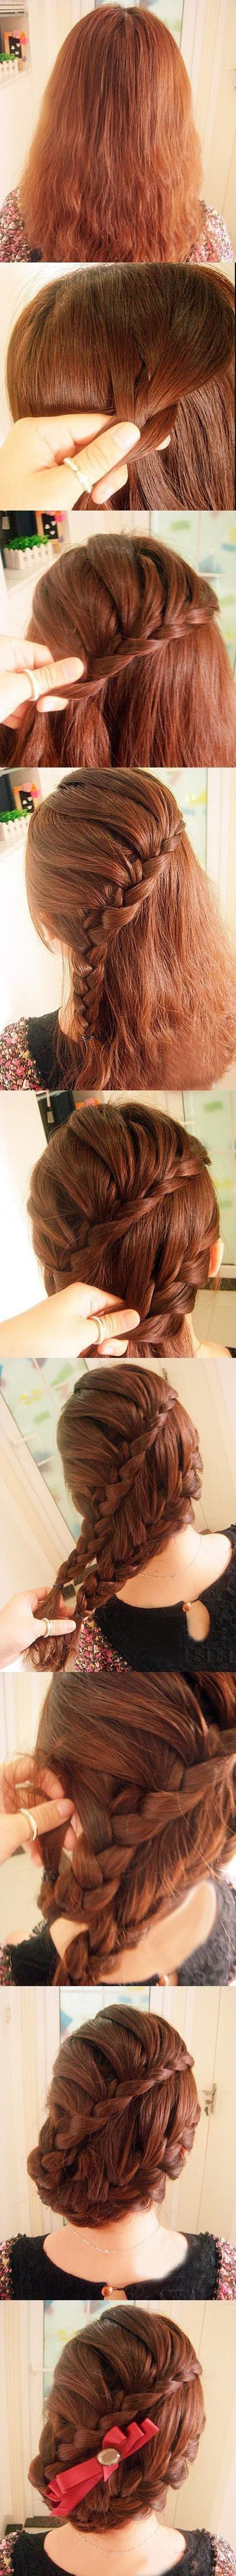 Easy Cute Fun Different Best Yet Simple French Braids Pretty Unique Braiding Hairstyles 2012 For Girls 5 Easy, Cute, Fun, Different, Best Yet Simple French Braids | Pretty & Unique Braiding Hairstyles 2012 For Girls